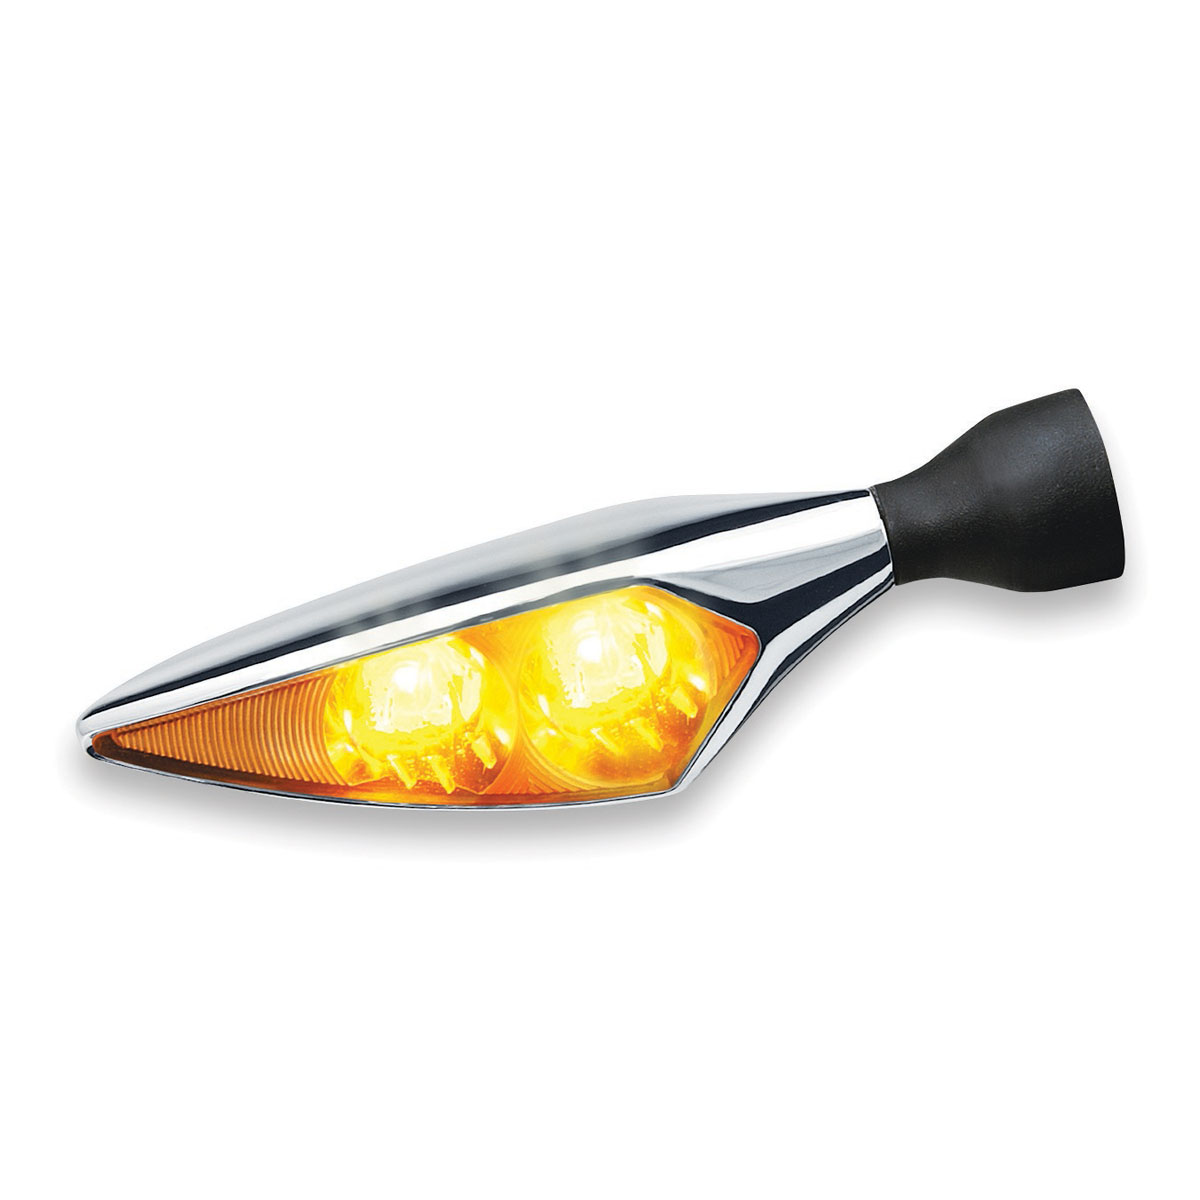 Kuryakyn by Kellermann micro Rhombus Extreme Chrome Amber Front Right/Rear Left Turn Signal